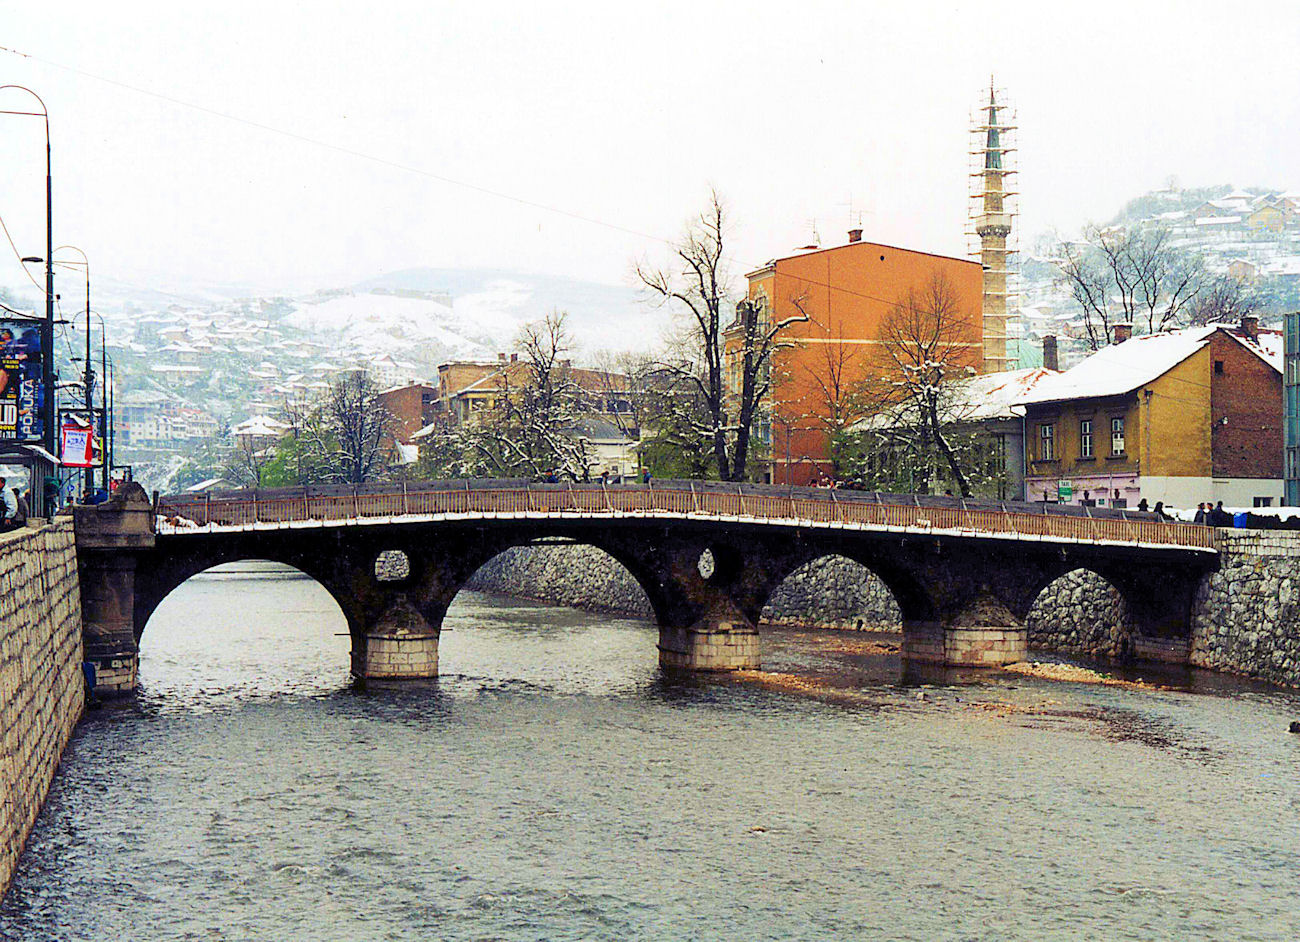 Sarajevo in 2003: there and back by train.